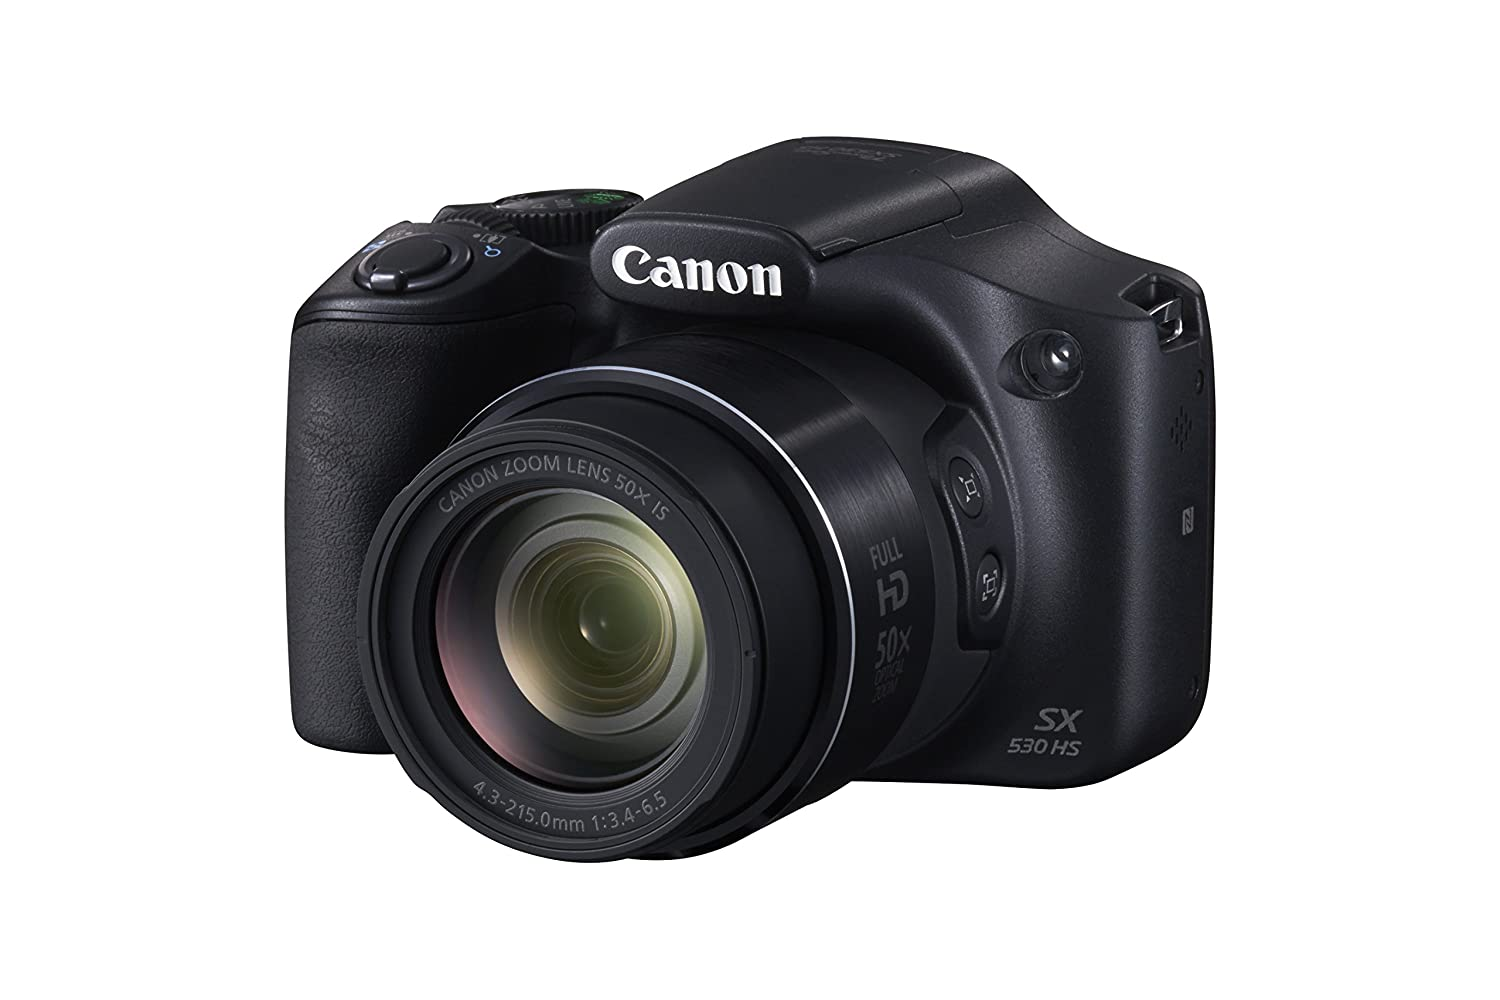 Canon PowerShot SX530 HS - Wi-Fi Enabled